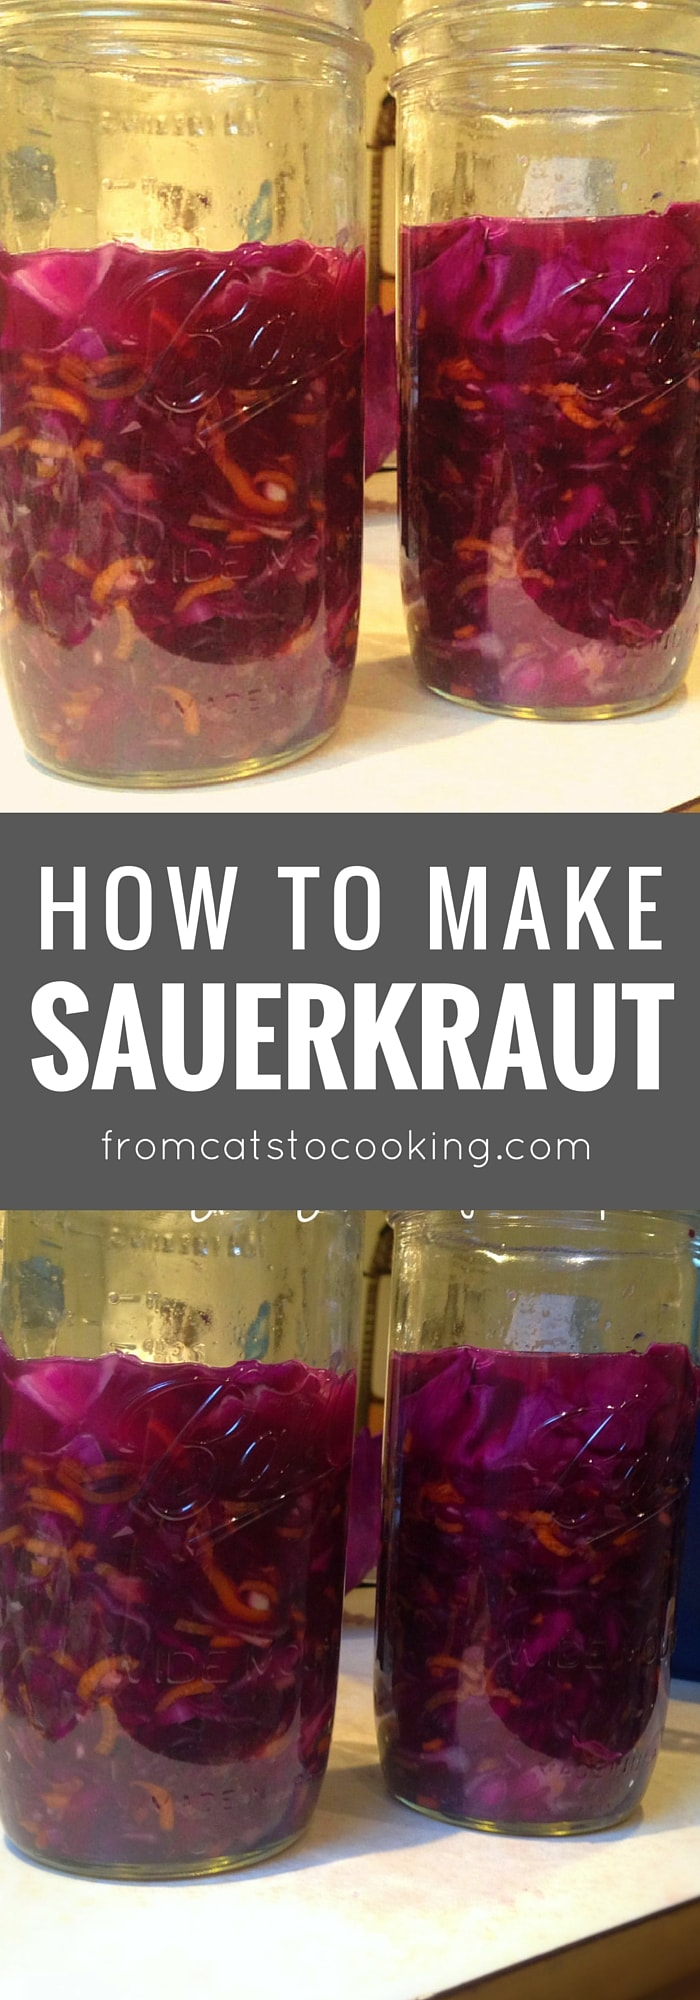 How to Make Sauerkraut - an easy recipe for this tasty condiment and side dish that's full of healthy probiotics. Click through to get the recipe or save this pin for later.